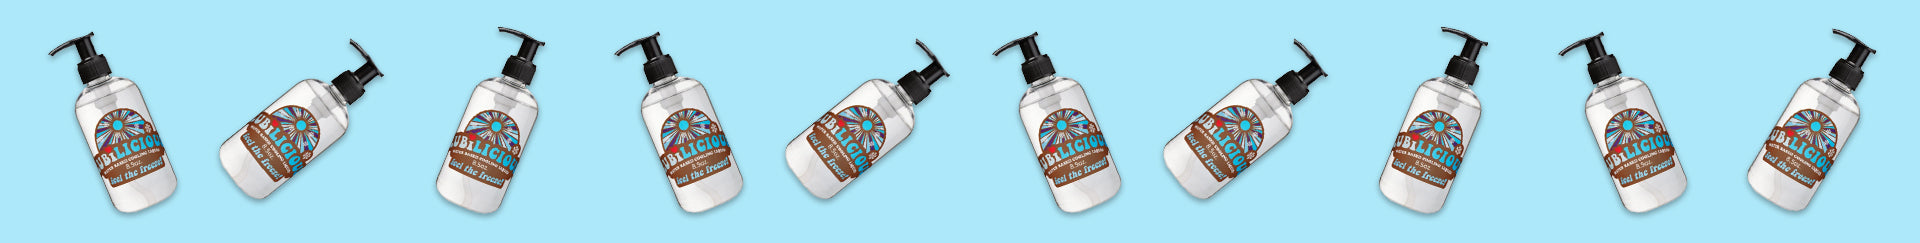 fun photo of falling lube Feel the Freeze cooling personal lubricant by Lubilicious